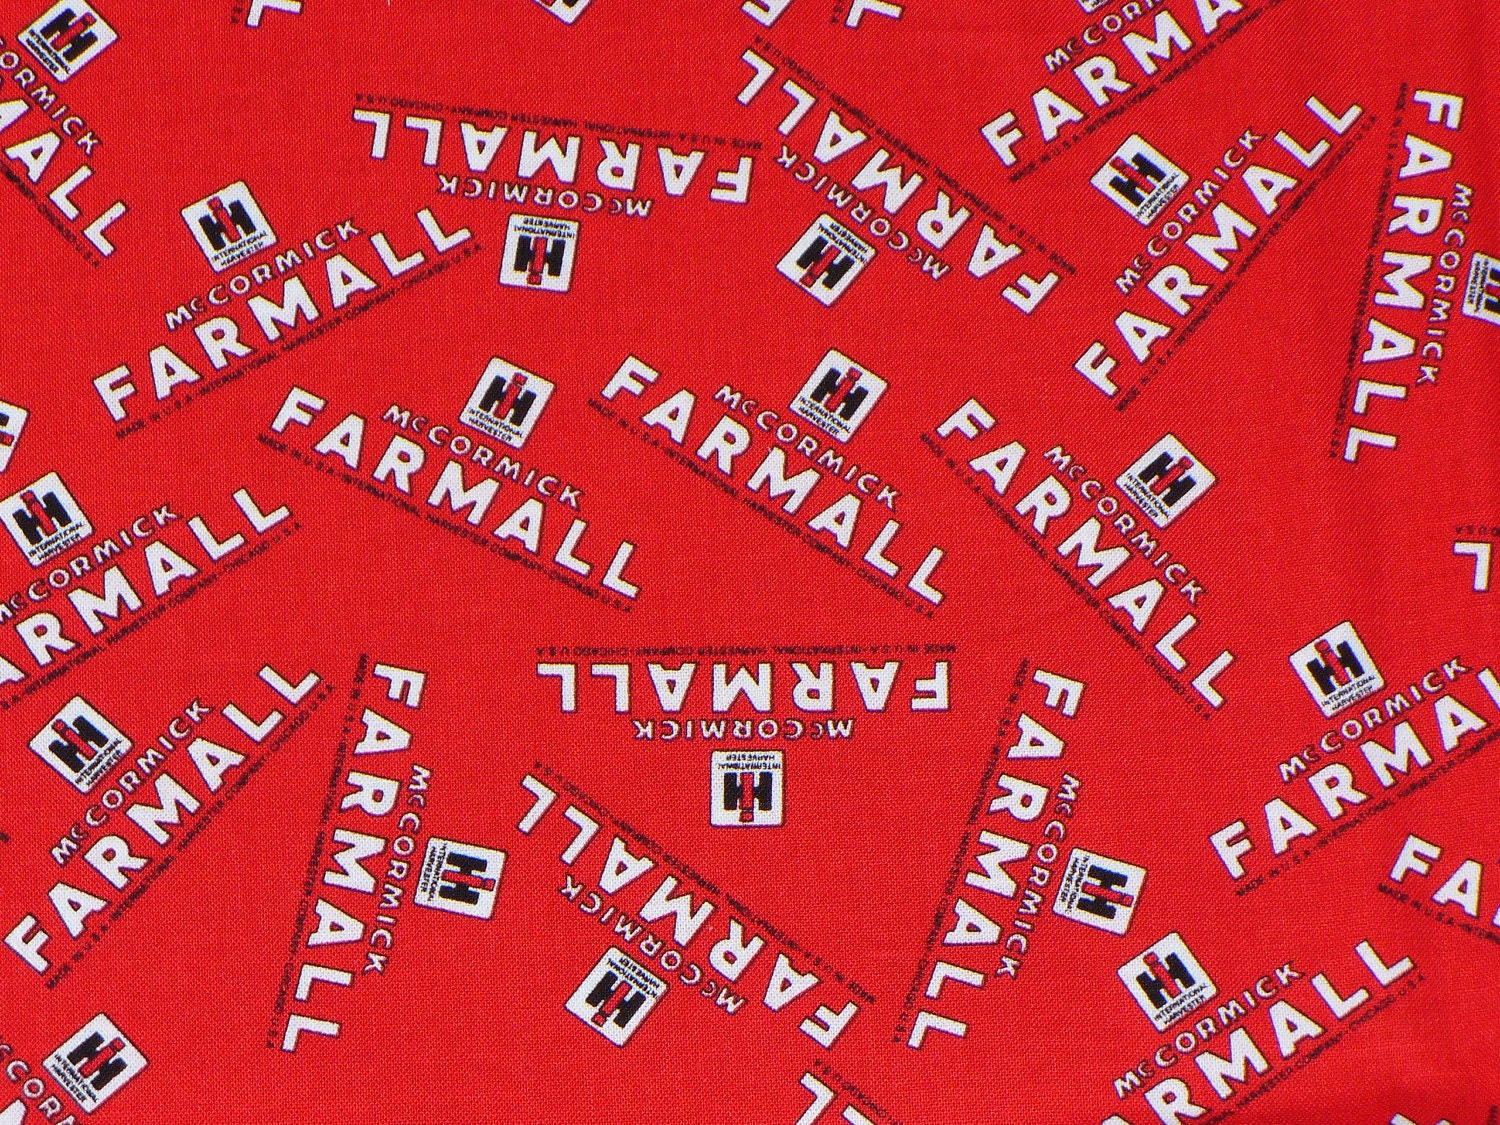 Like this item Farmall Logo Wallpaper